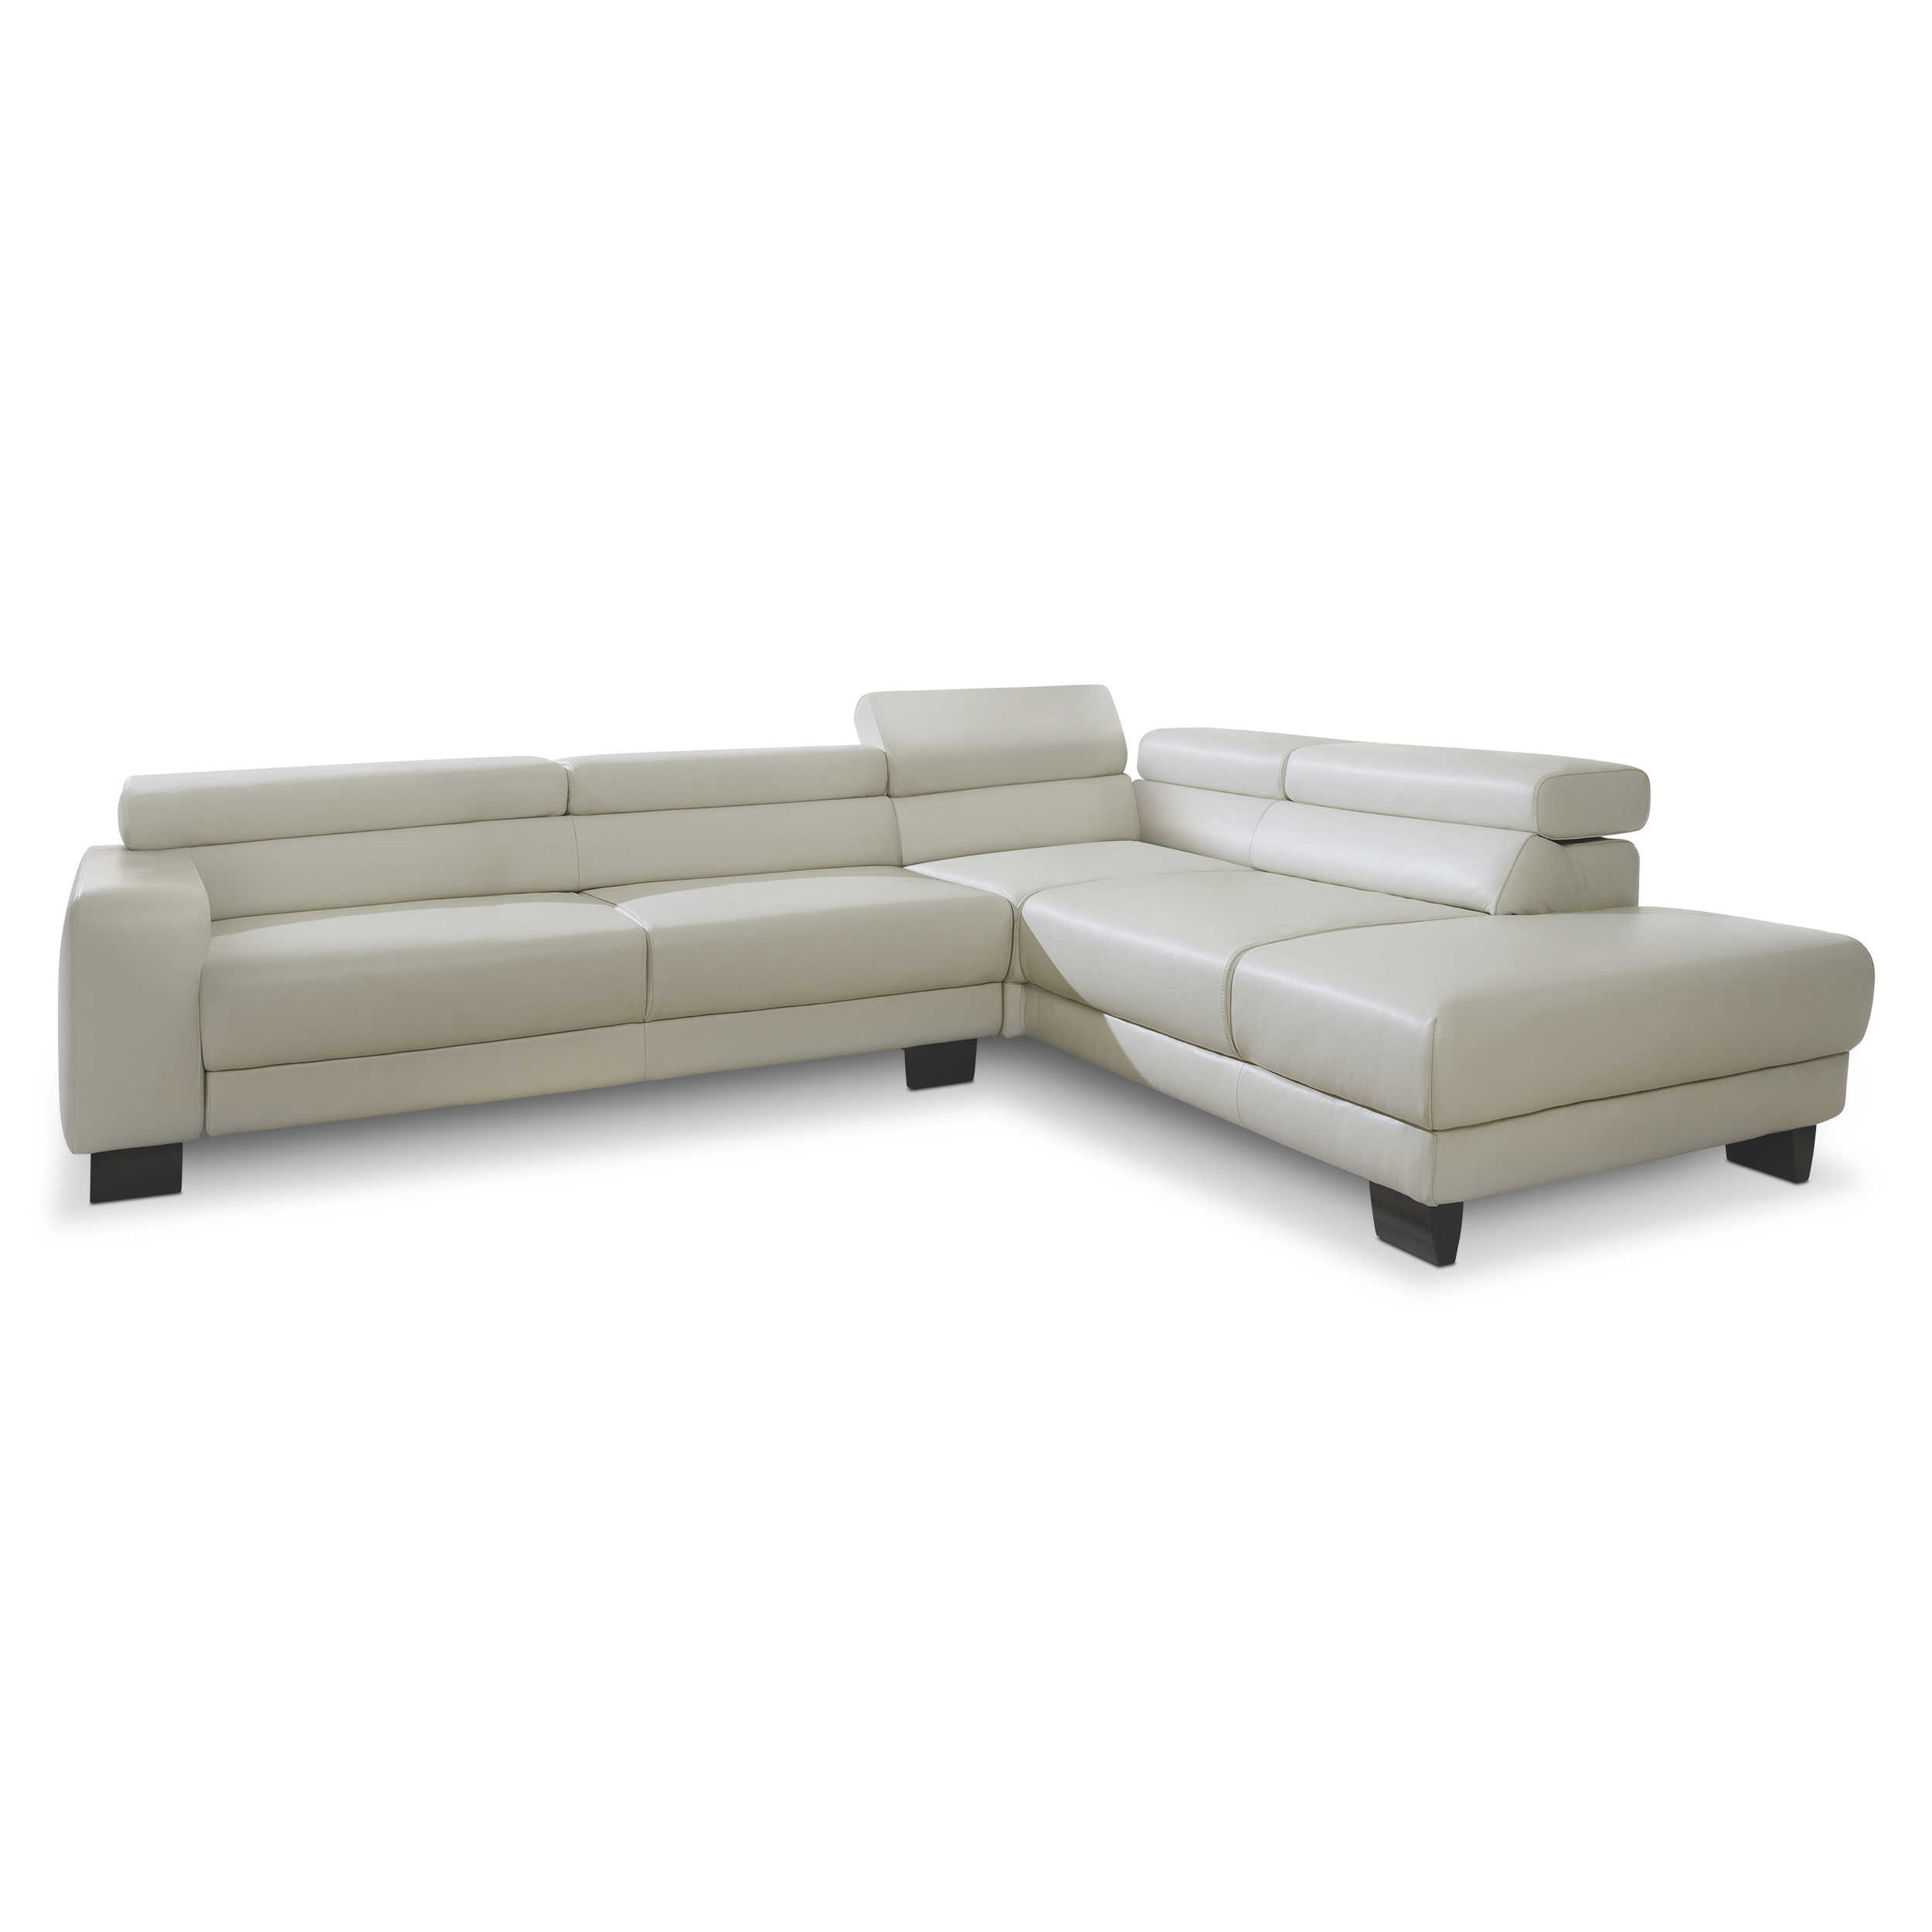 willi schillig ecksofa 20450 fuzion creme leder online kaufen bei woonio. Black Bedroom Furniture Sets. Home Design Ideas